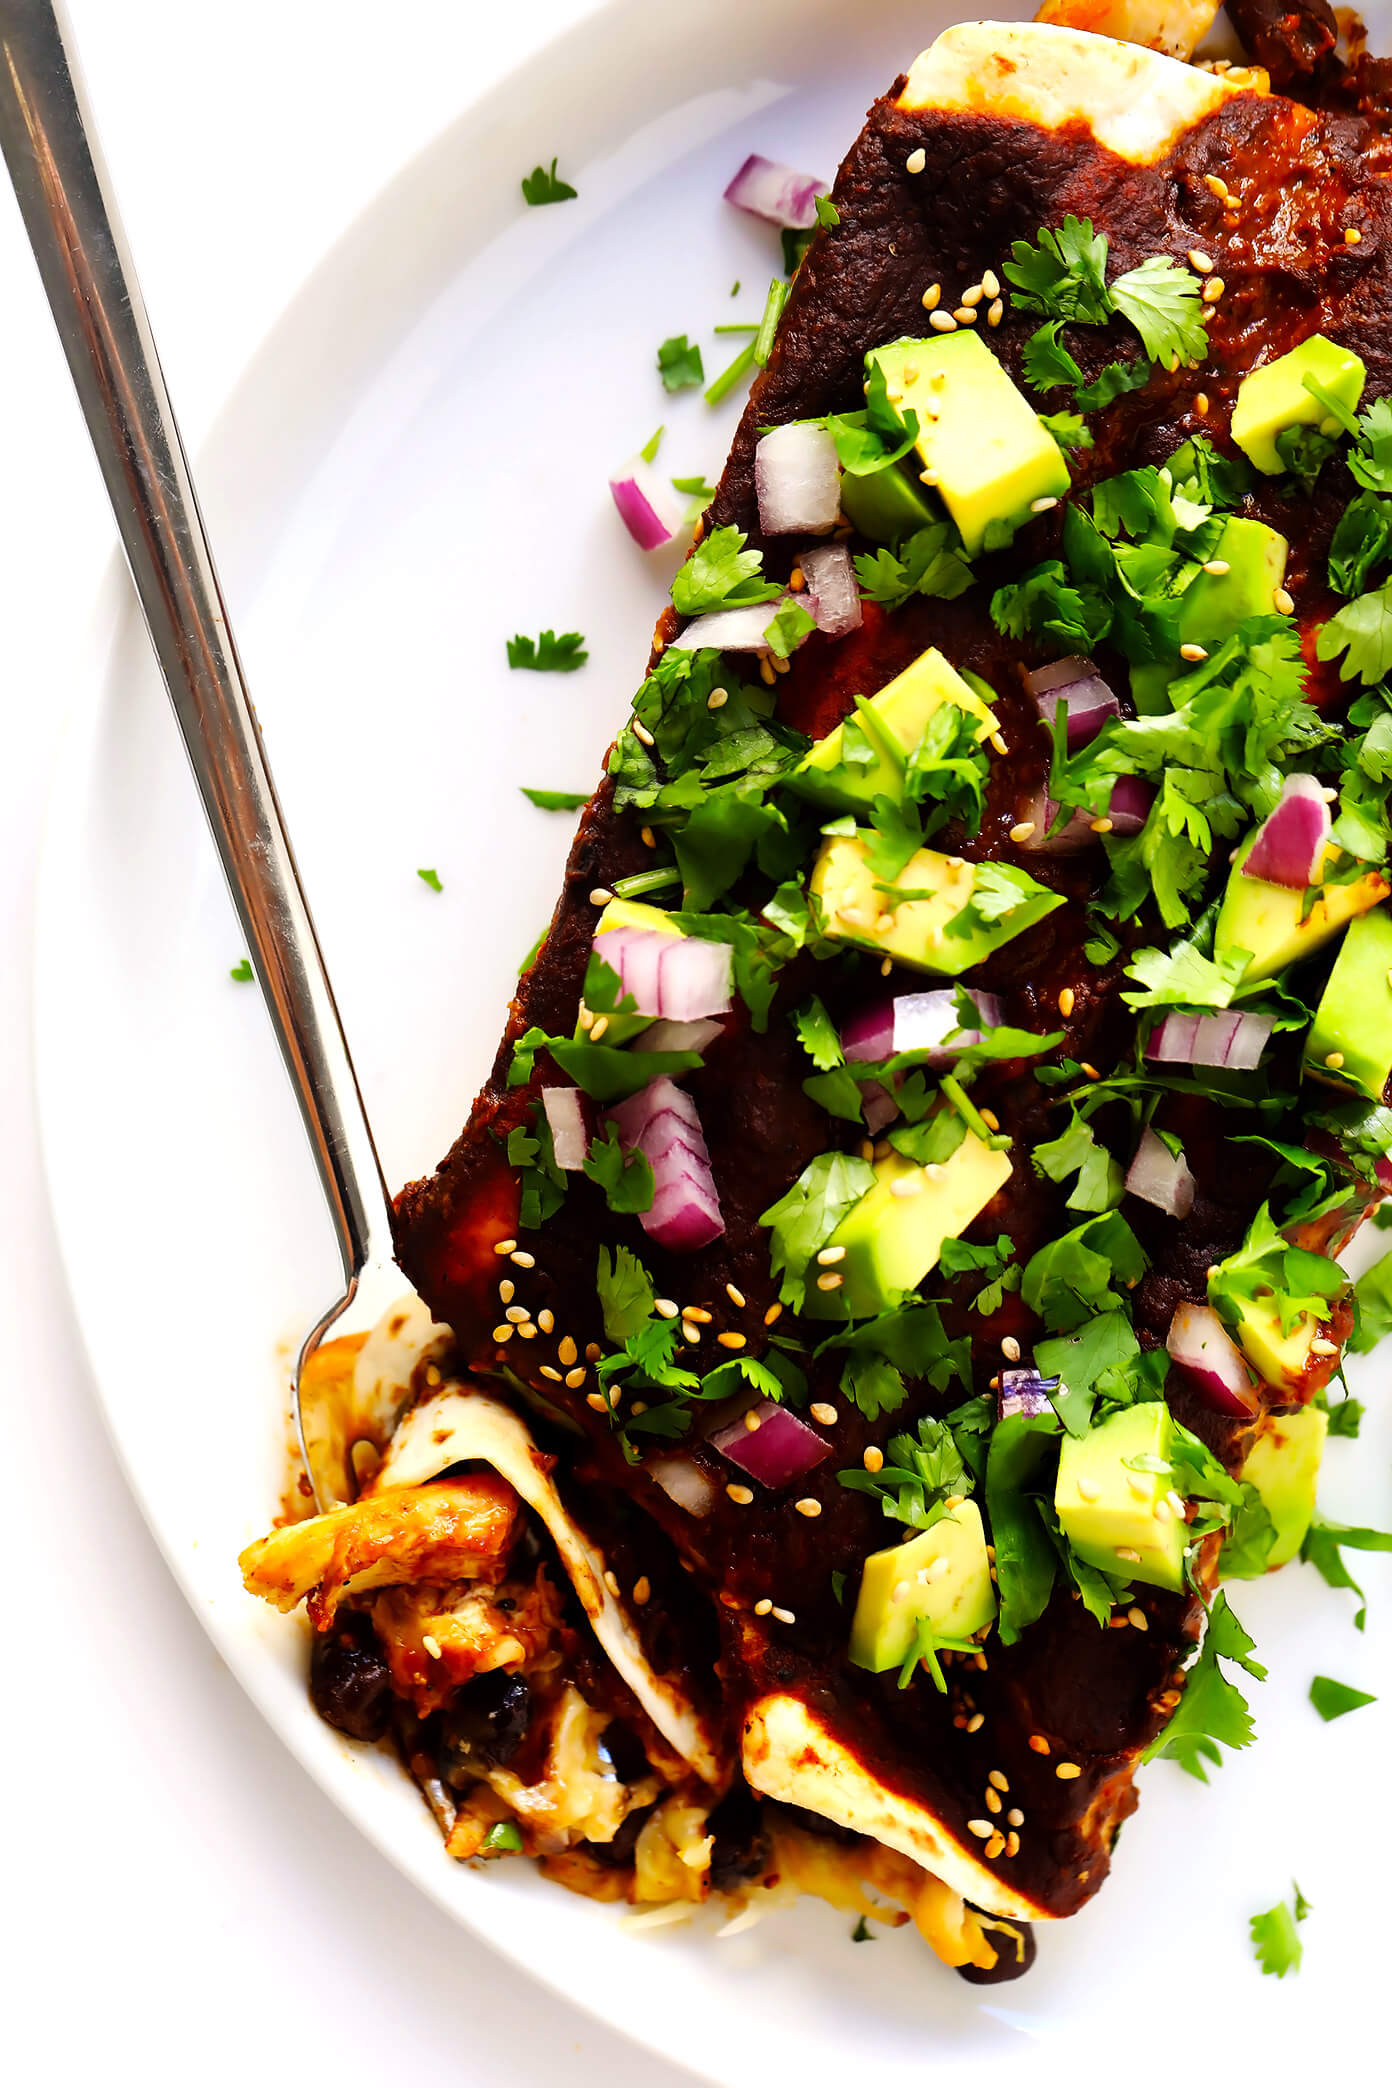 Avocado Mole Enchiladas | Filled with chicken, pork, or your choice of vegetarian fillings